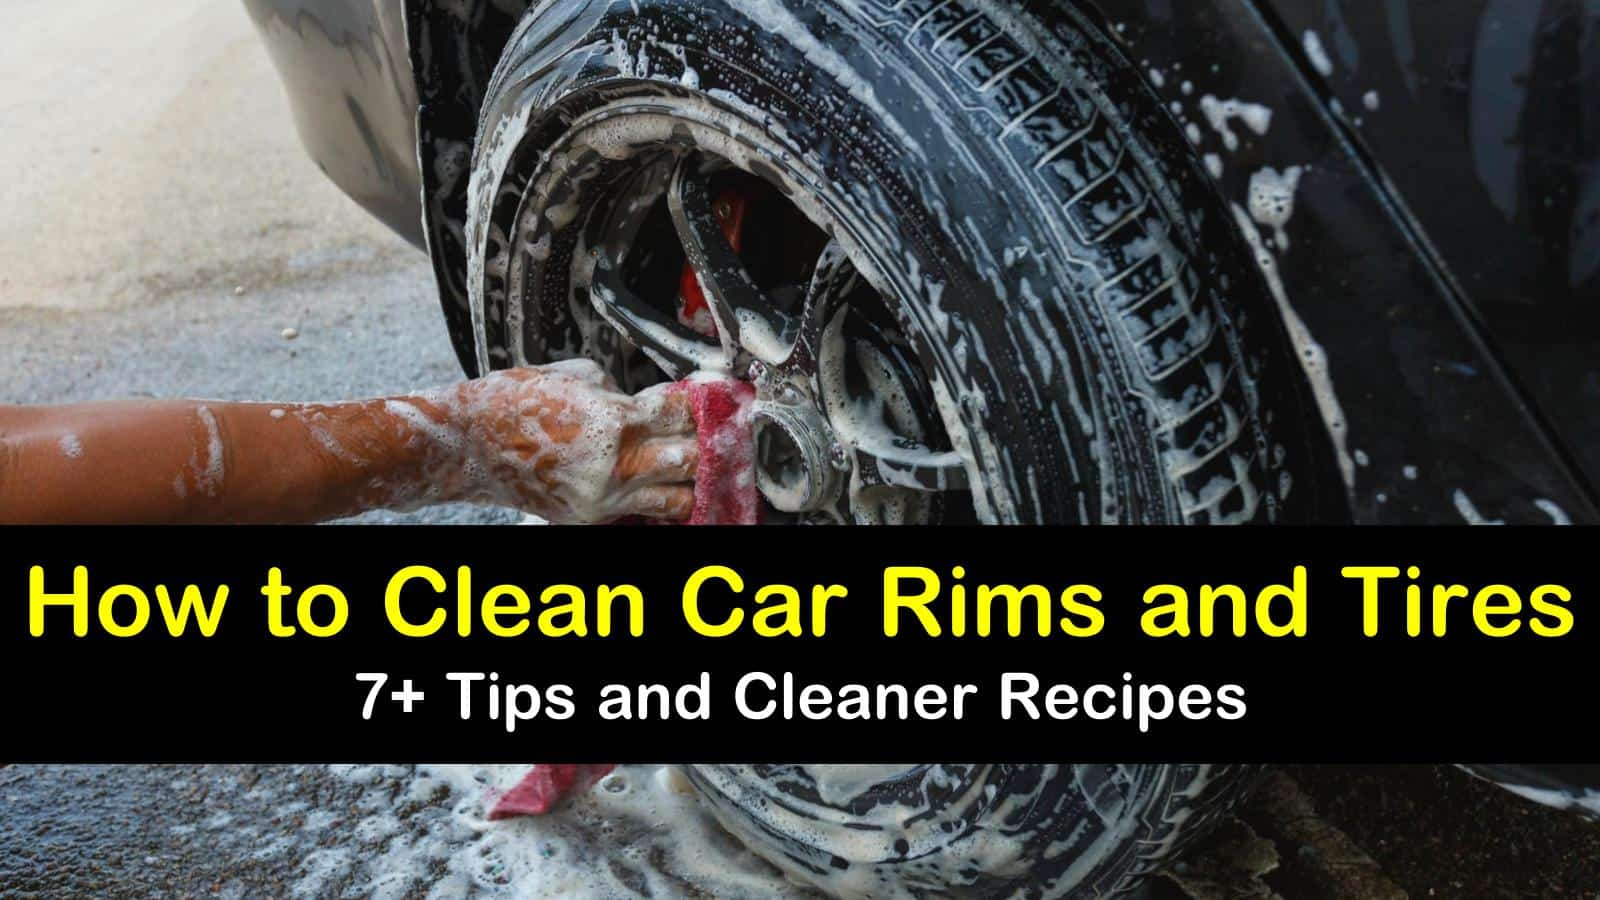 how to clean car rims and tires titleimg1